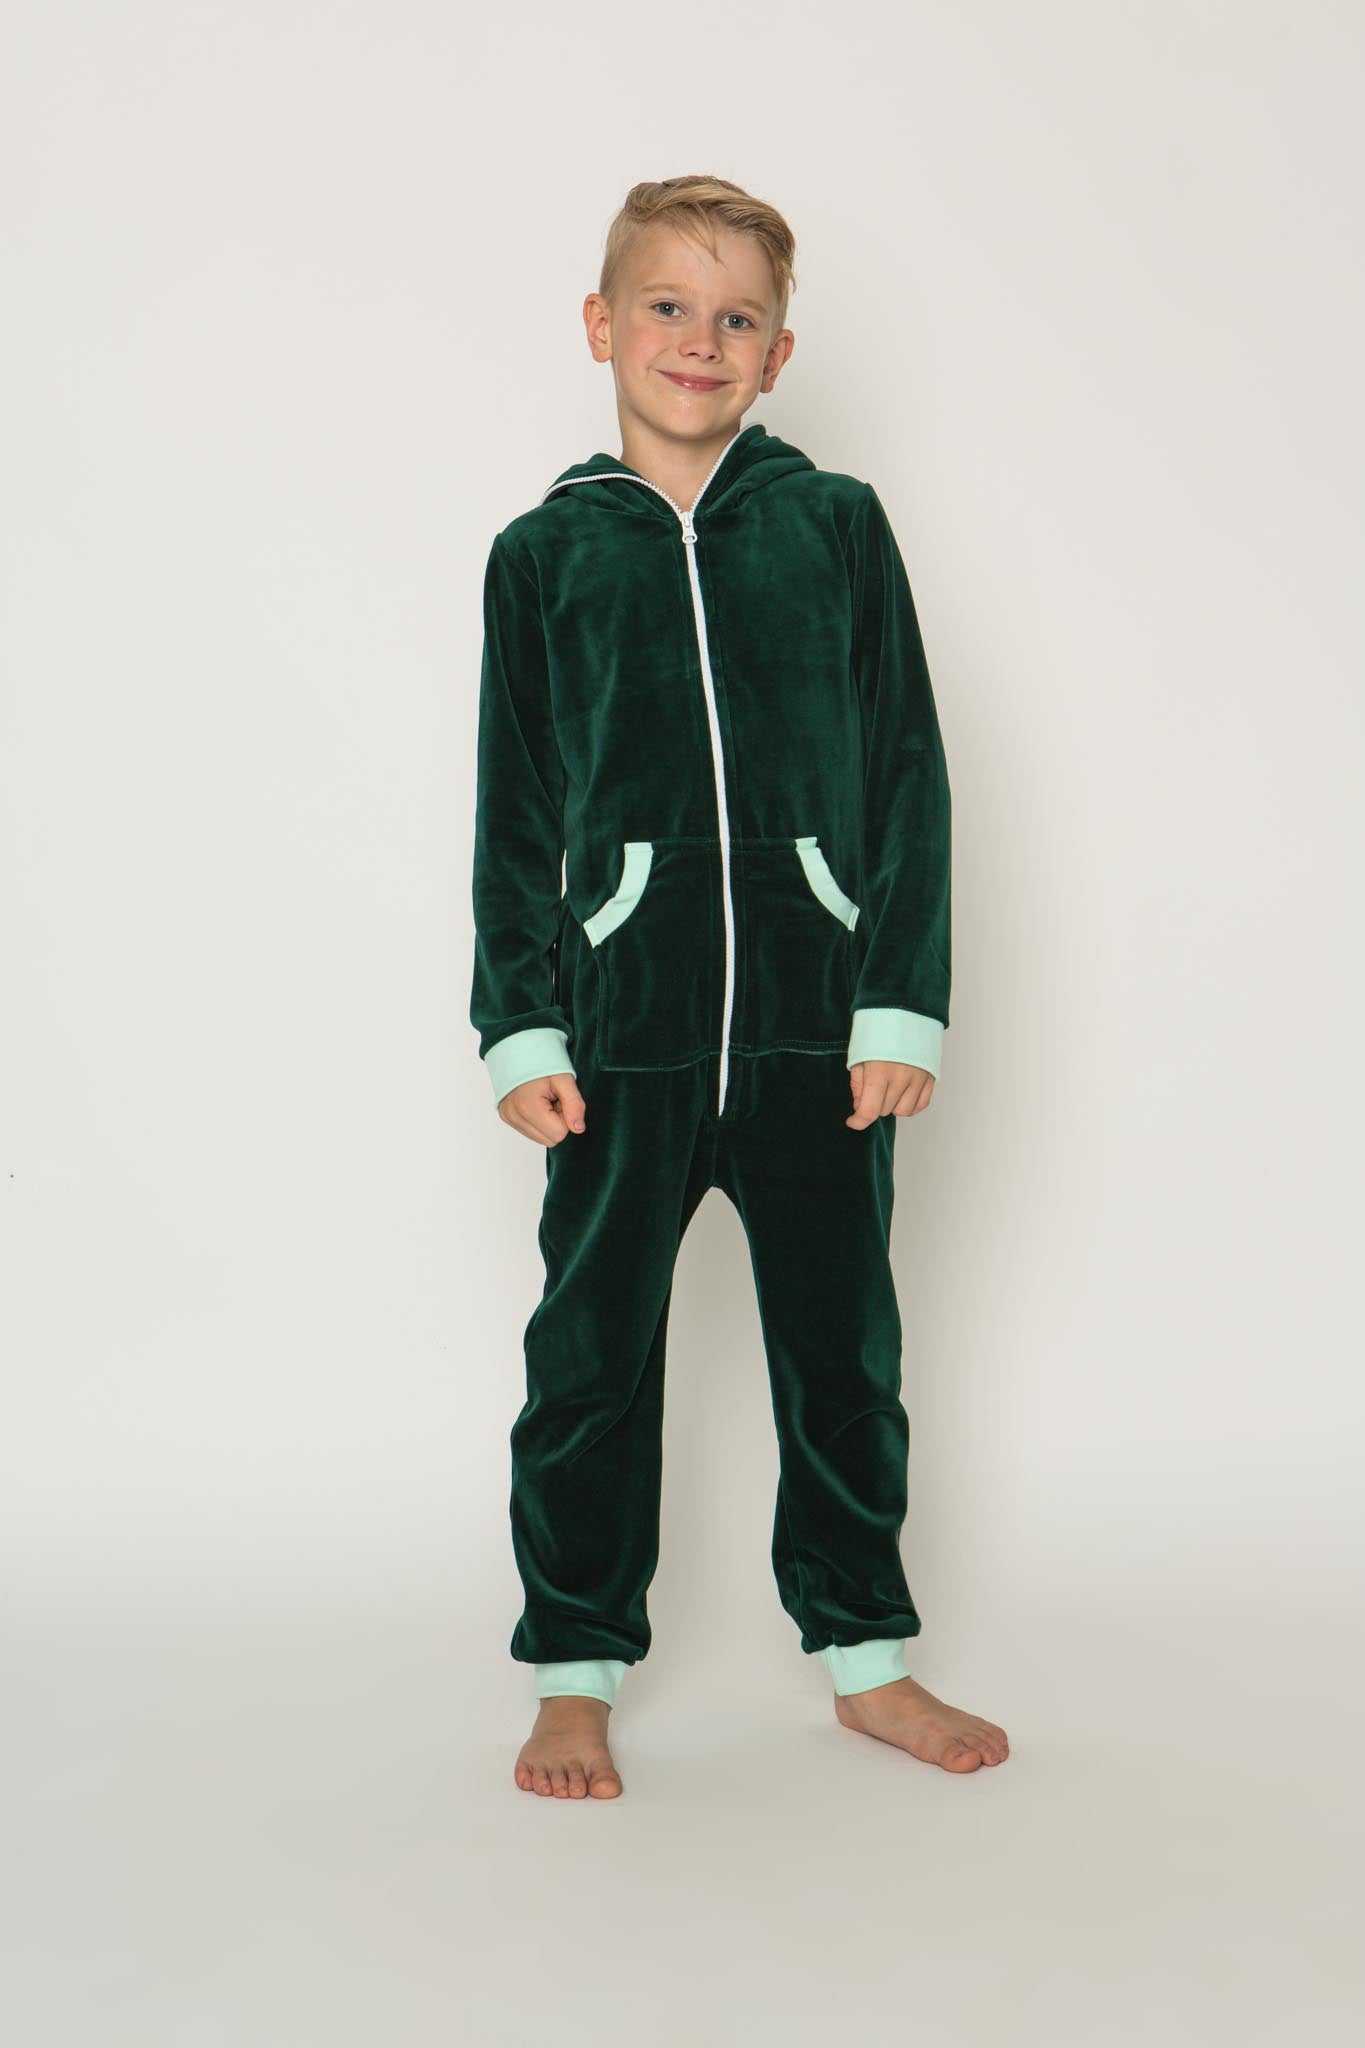 Sofa Killer emerald green unisex kids velours onesie